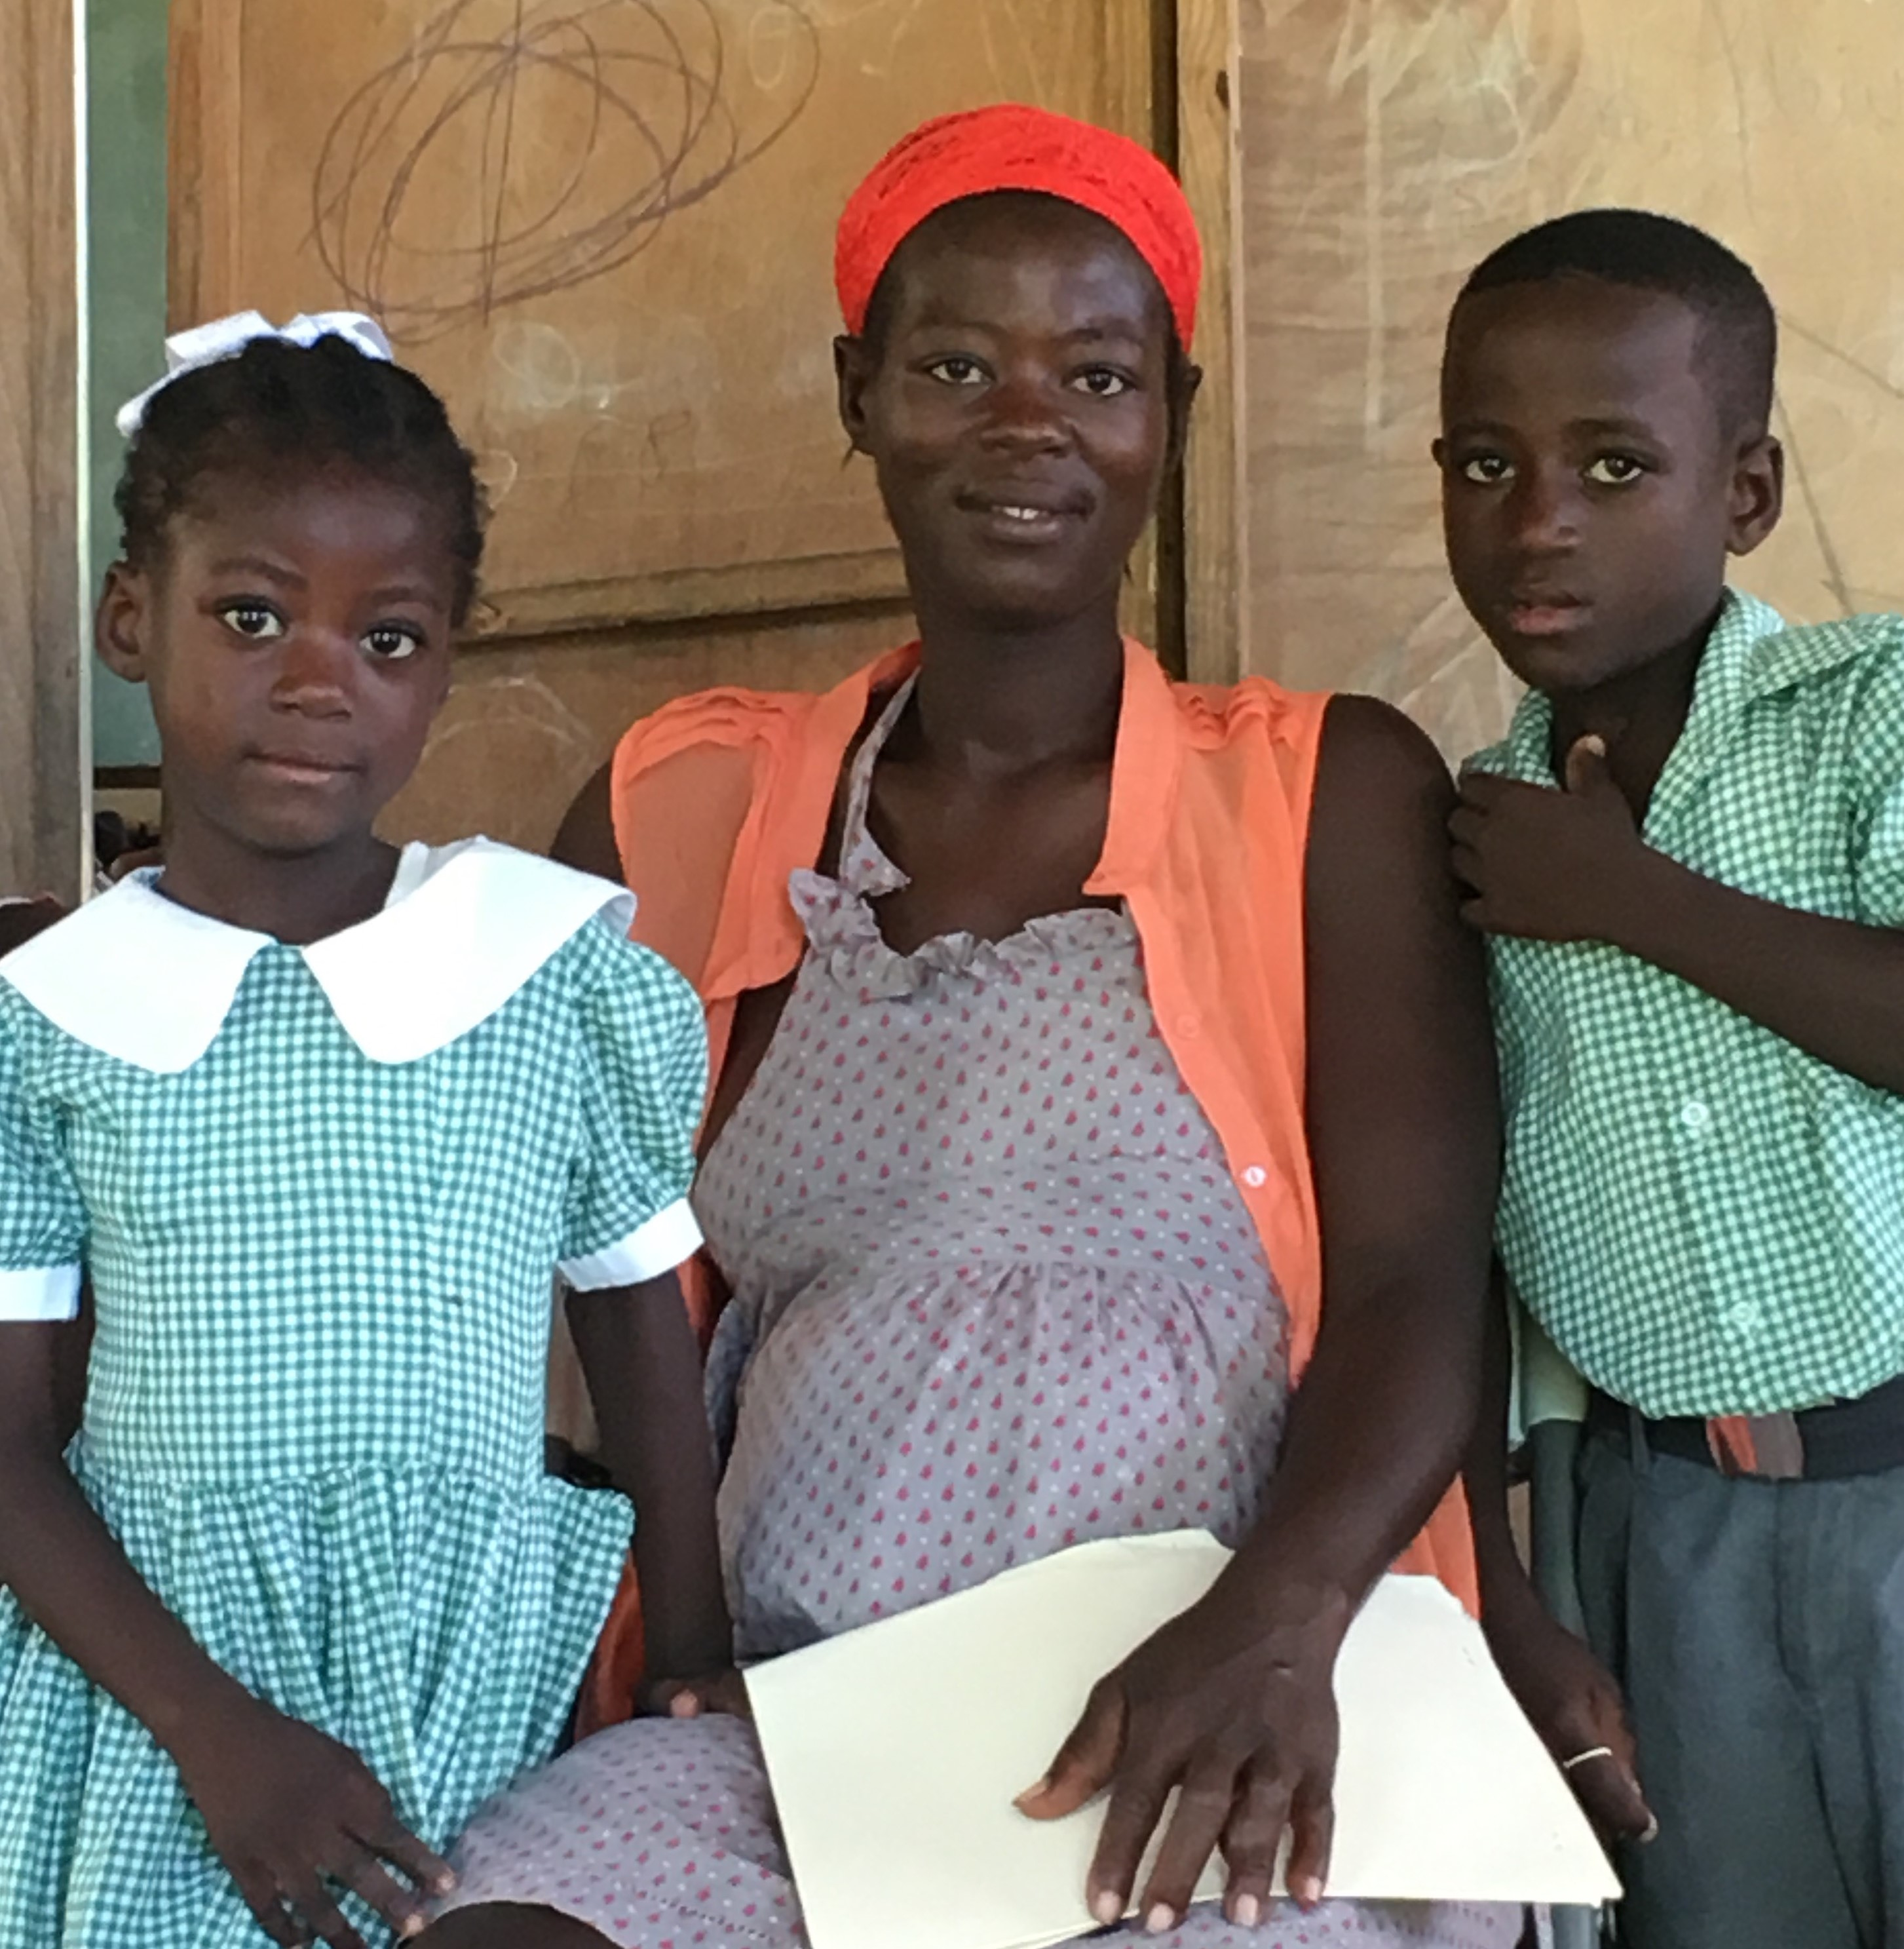 Haitian mom, Loulouse, with her son and daughter at a school clinic